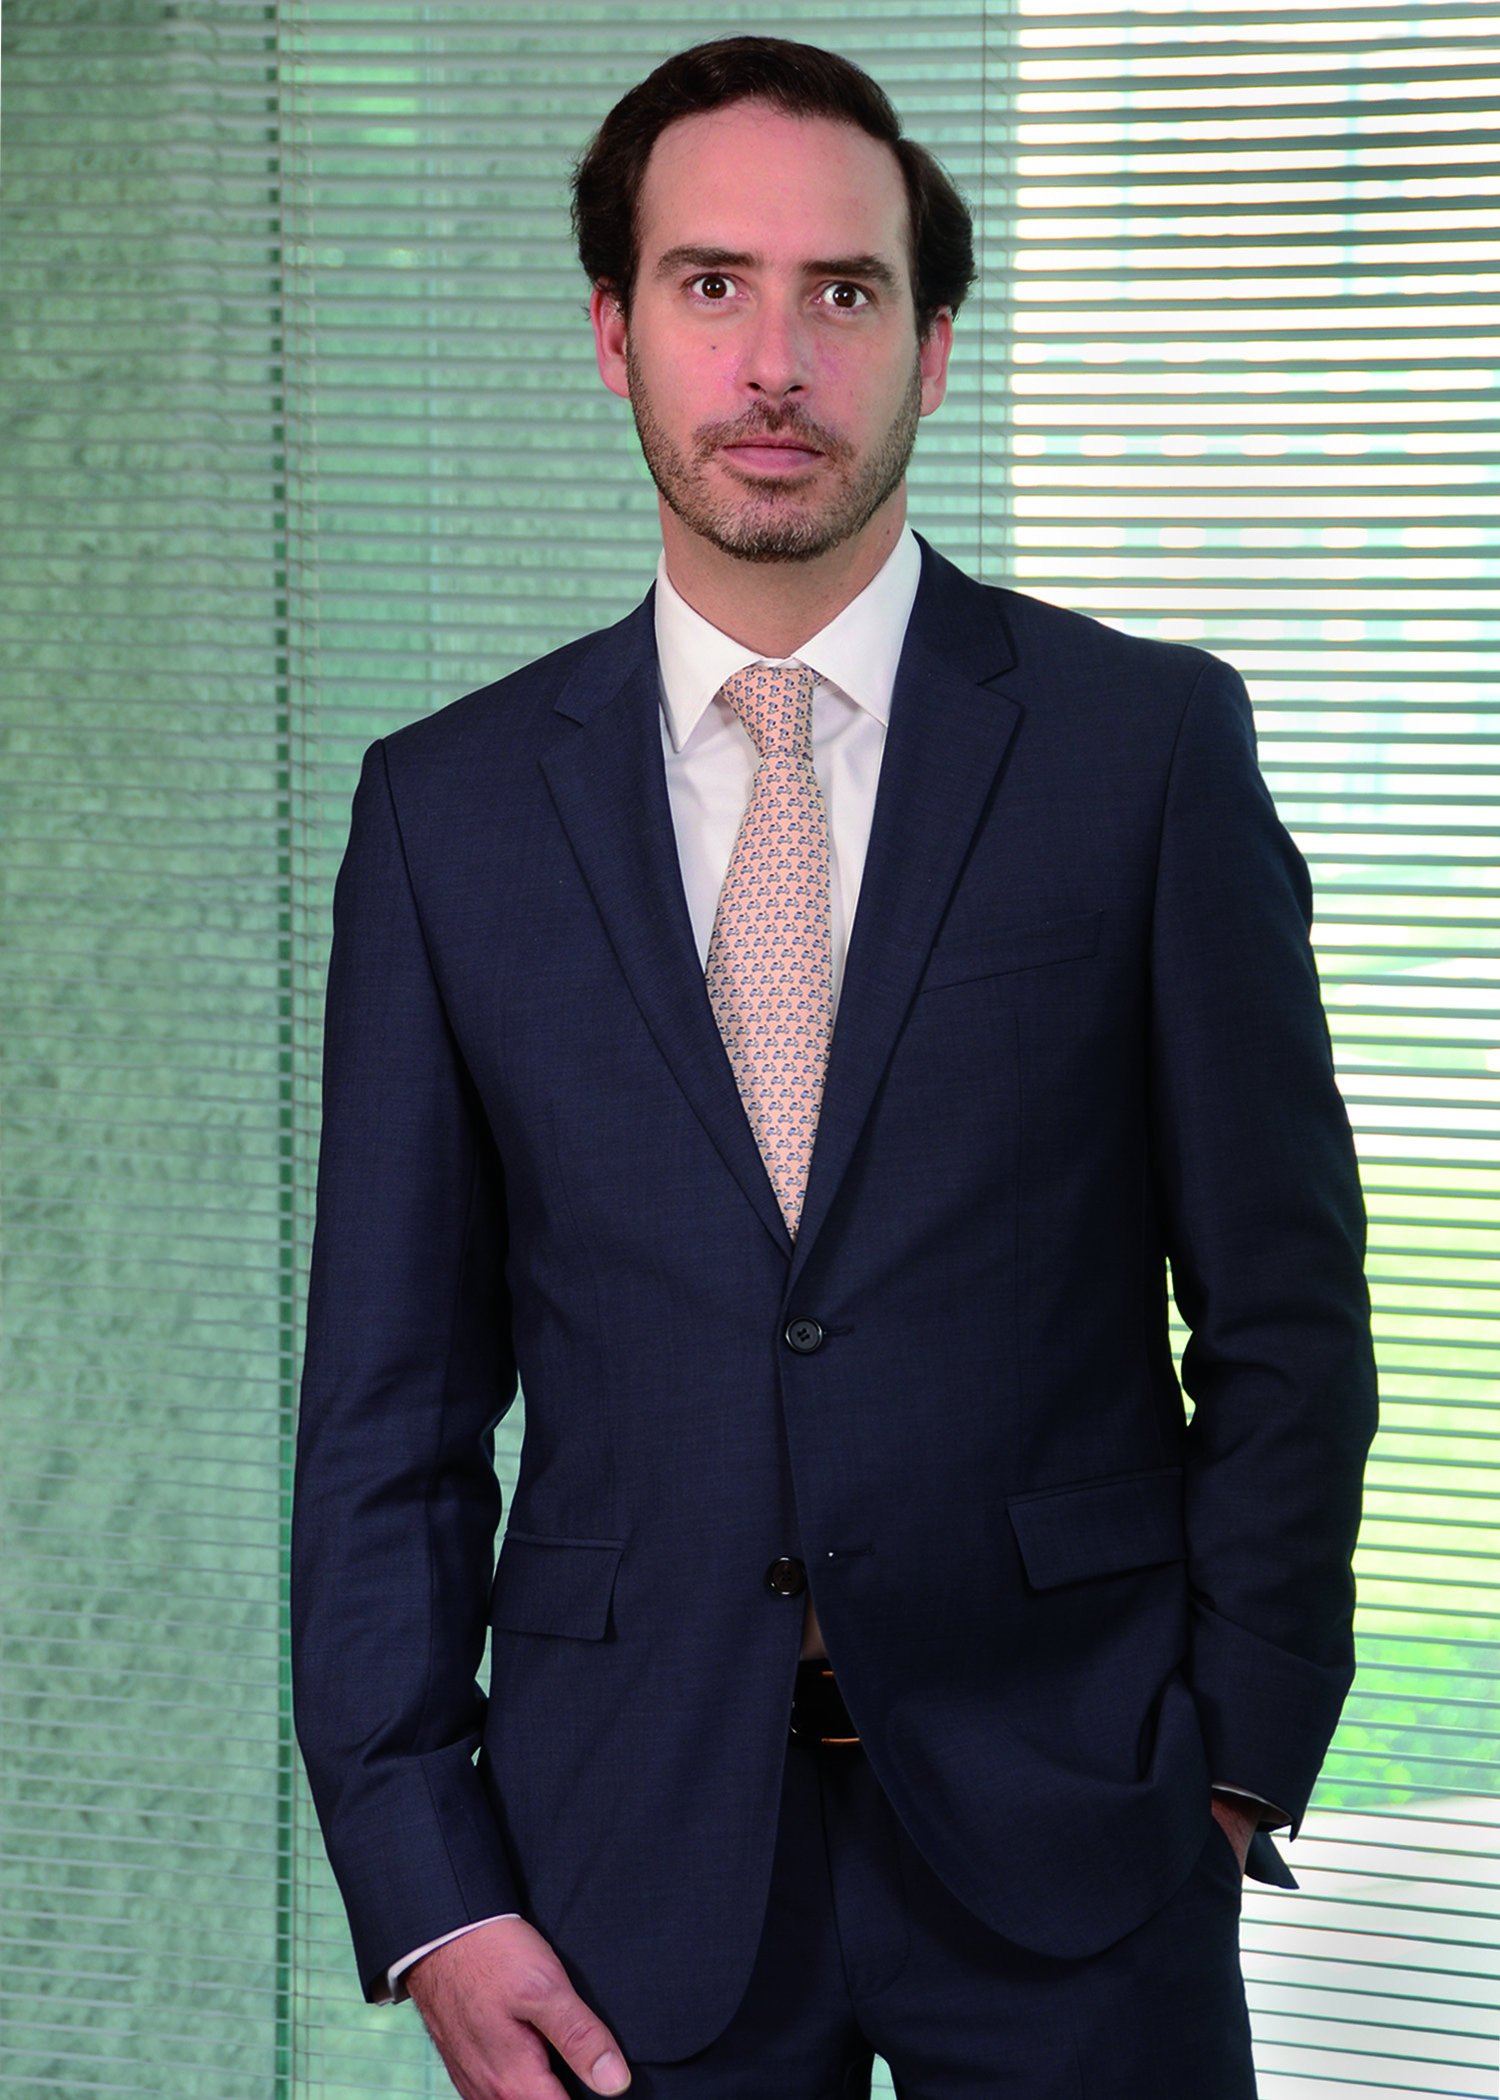 Alejandro Chico, socio de Jones Day